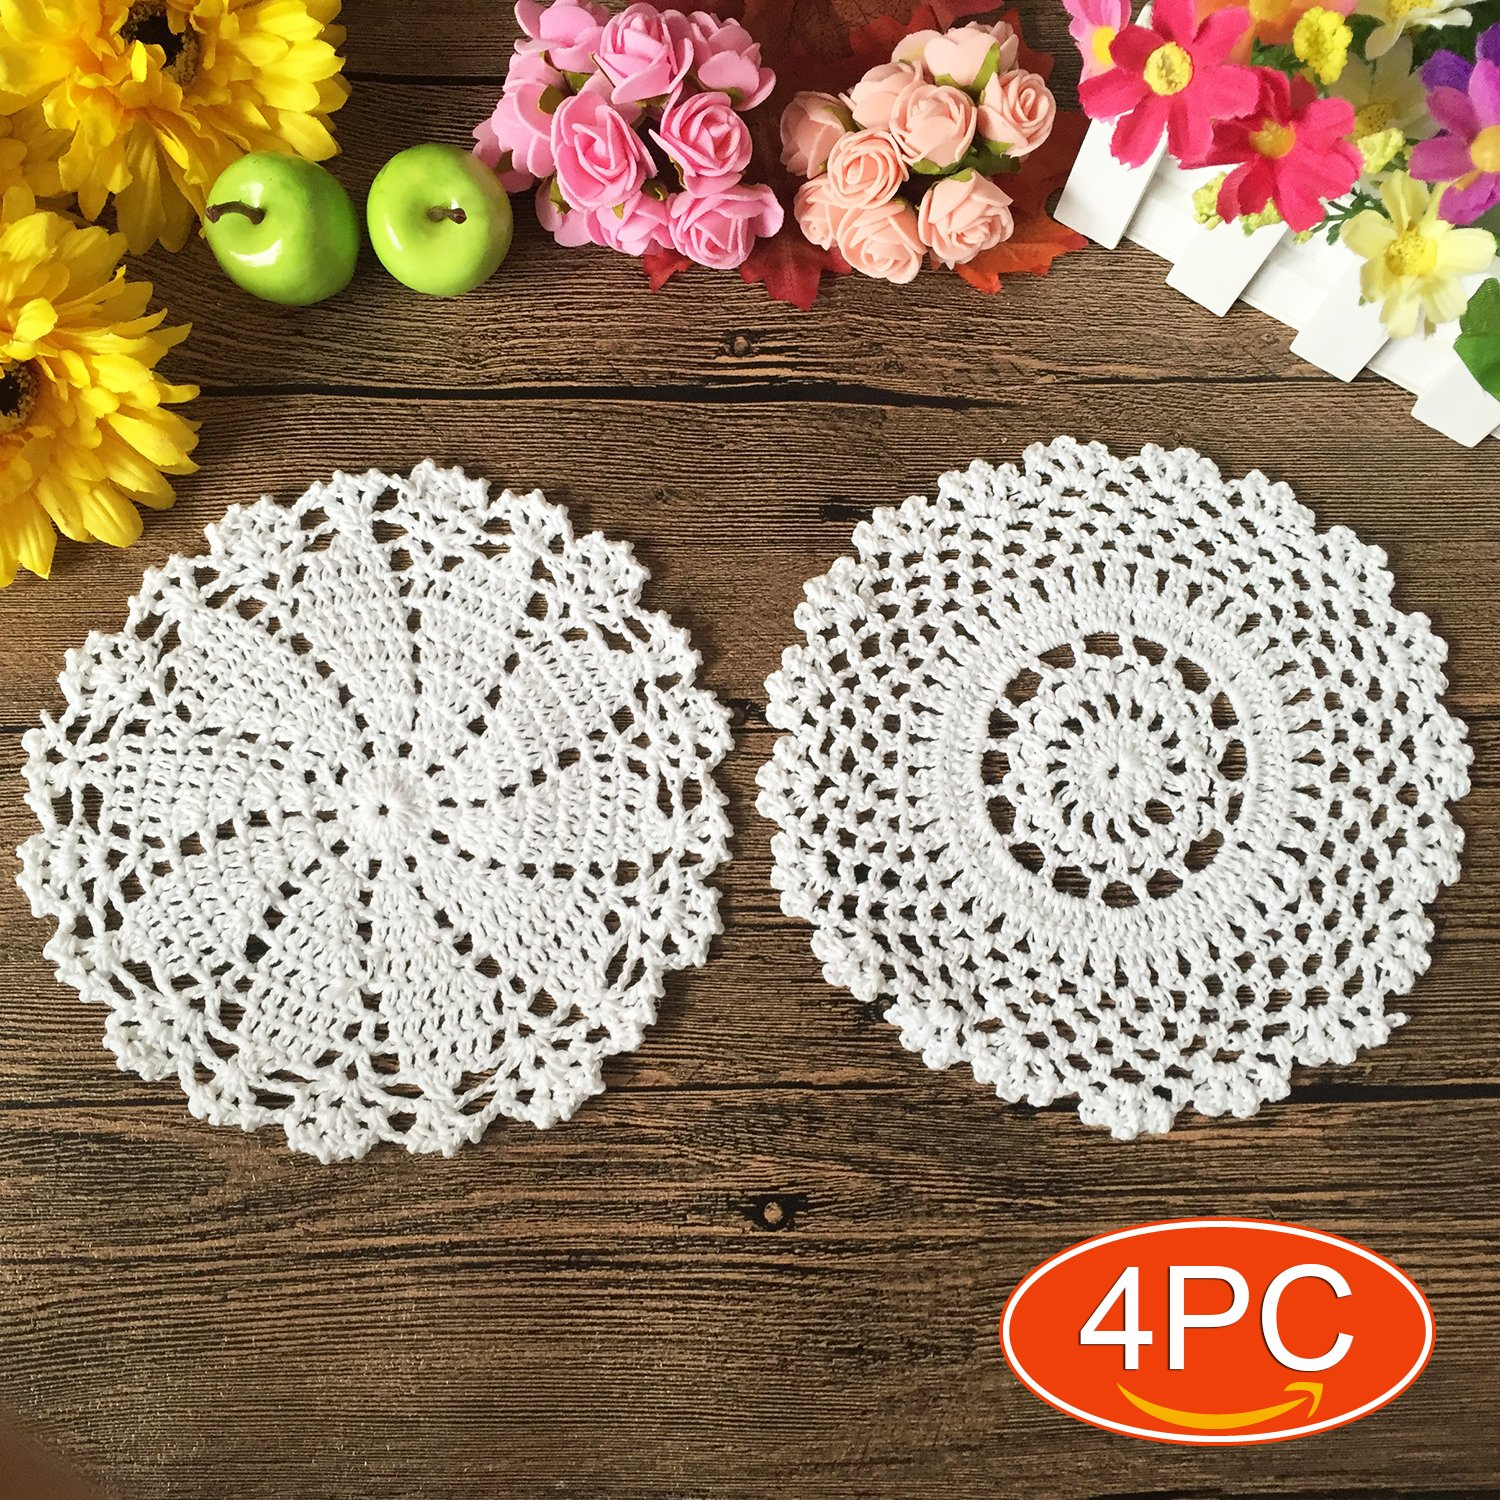 (4pc-7 Inch White) - Elesa Miracle Handmade Round Crochet Cotton Lace Table Placemats Doilies Value Pack, 4pc, Mix, Beige/White, 18cm (4pc-18cm White)  4pc-7 Inch White B01GHUU7FO